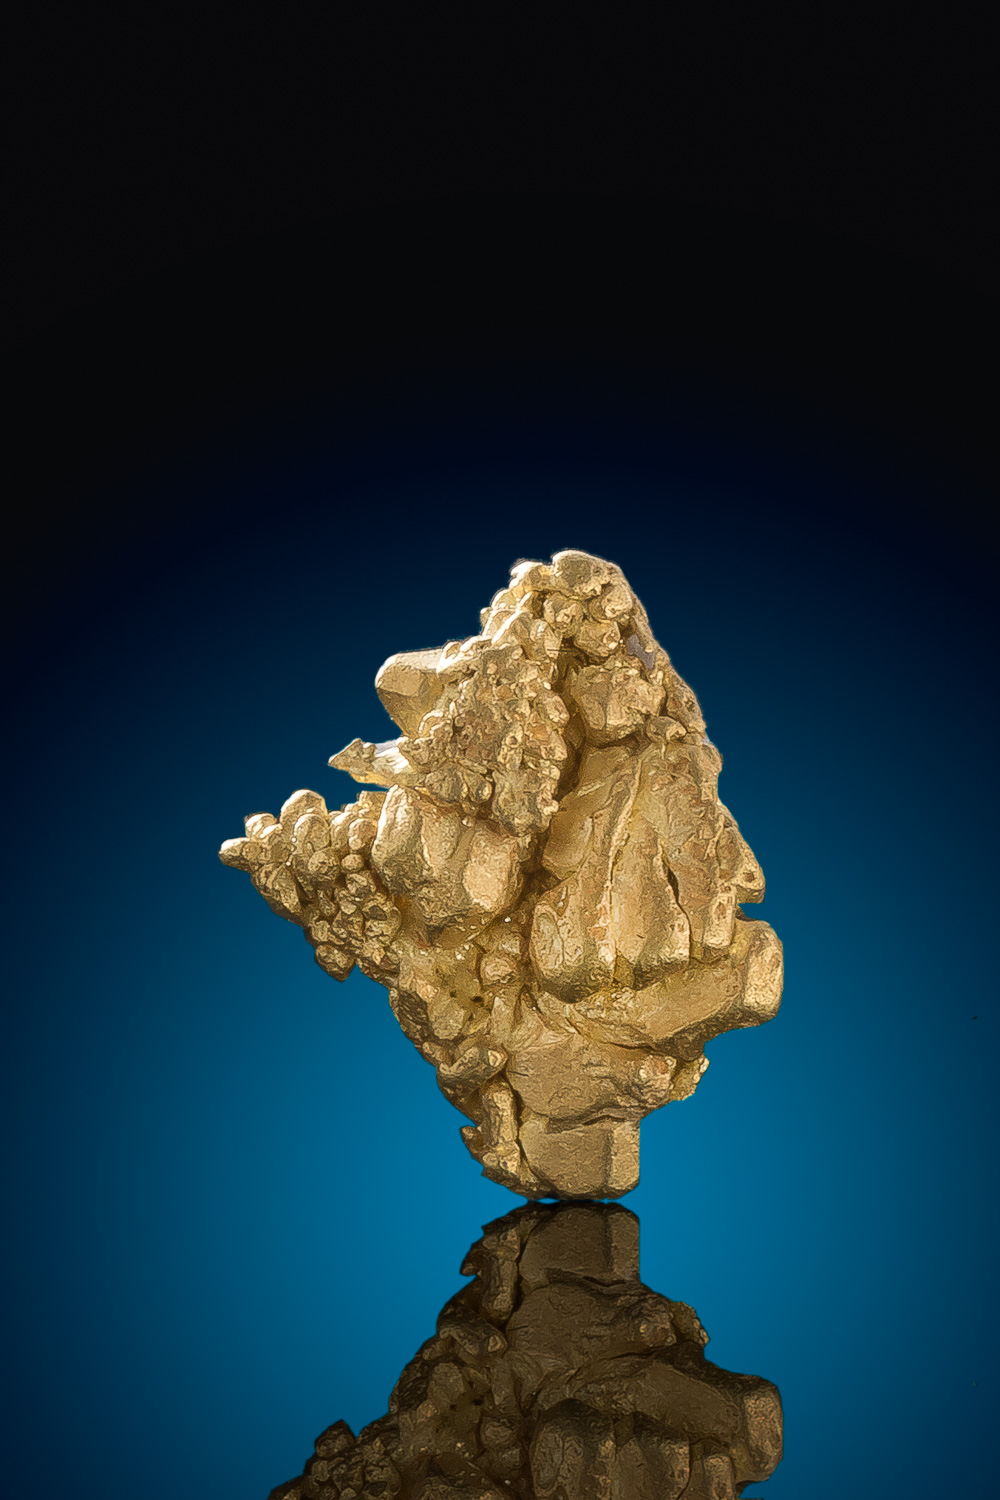 Mt. Kare - Papua New Guinea - Facted Gold Cluster